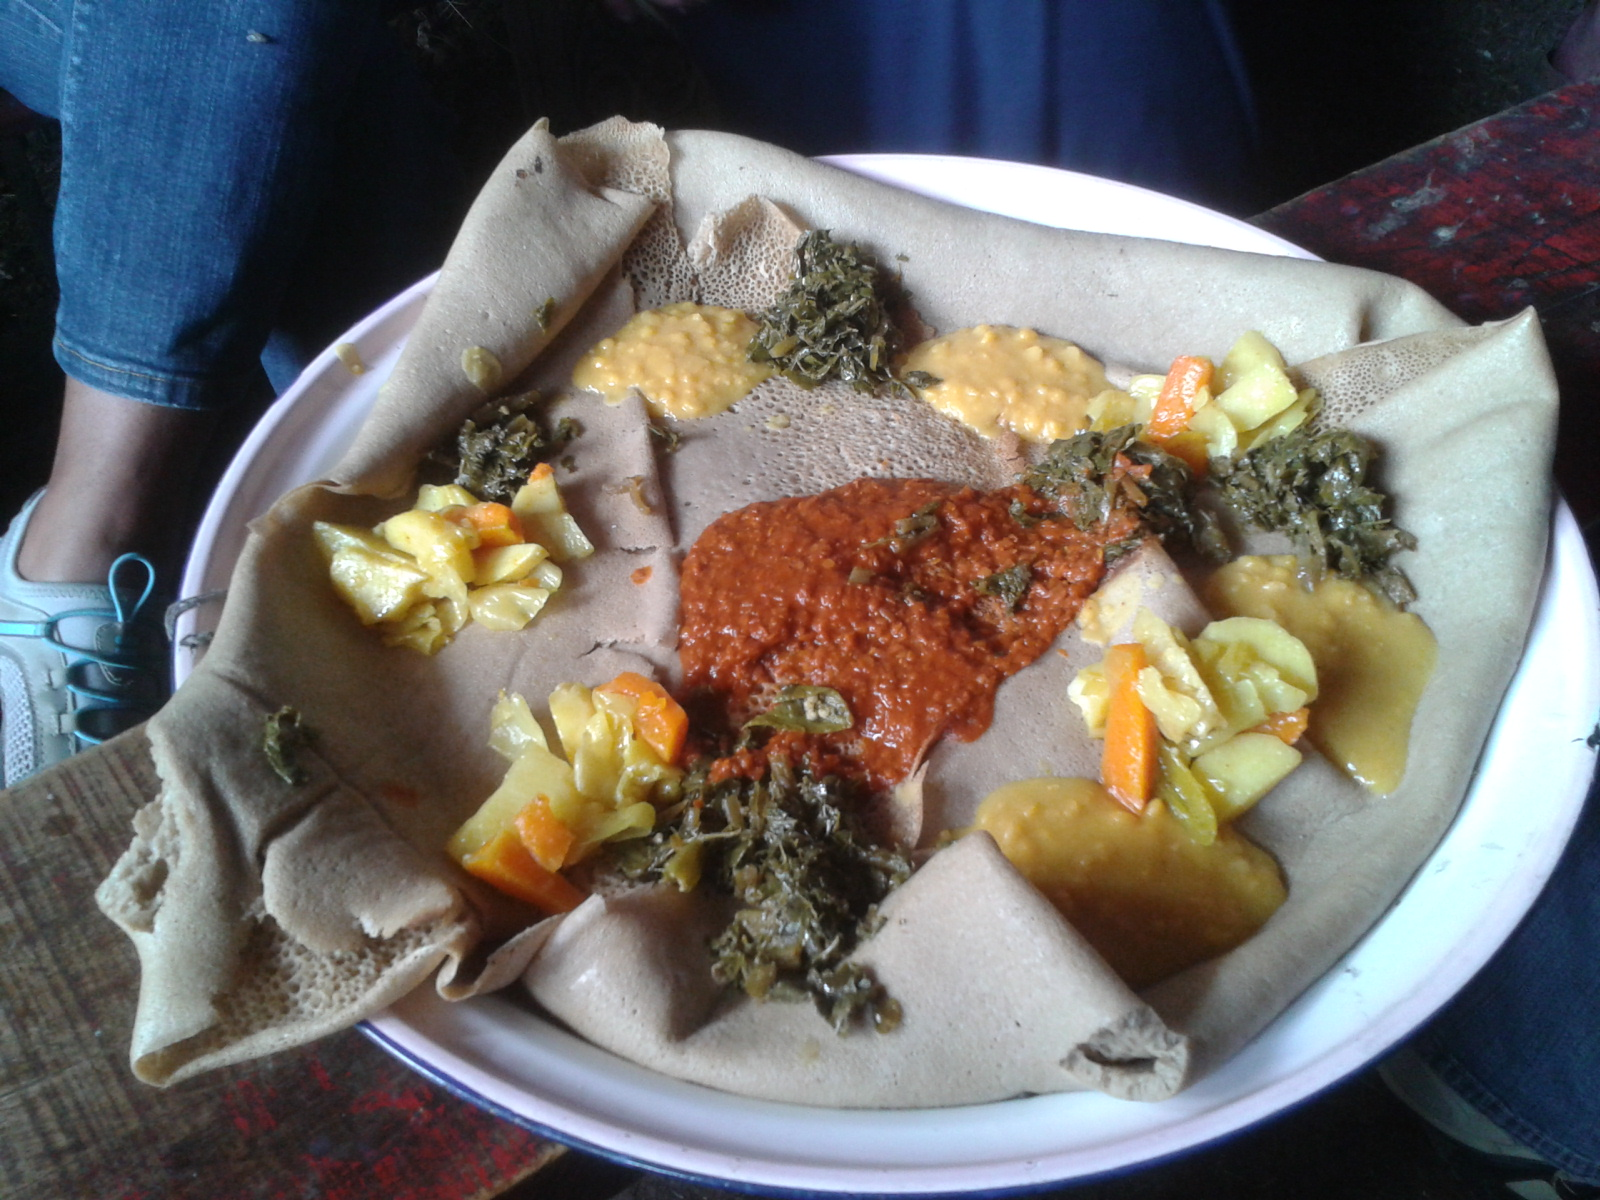 The rising costs of nutritious foods in ethiopia we explore how prices and consequently the affordability of nutritious food have changed over the last decade in ethiopia download the pdf forumfinder Images